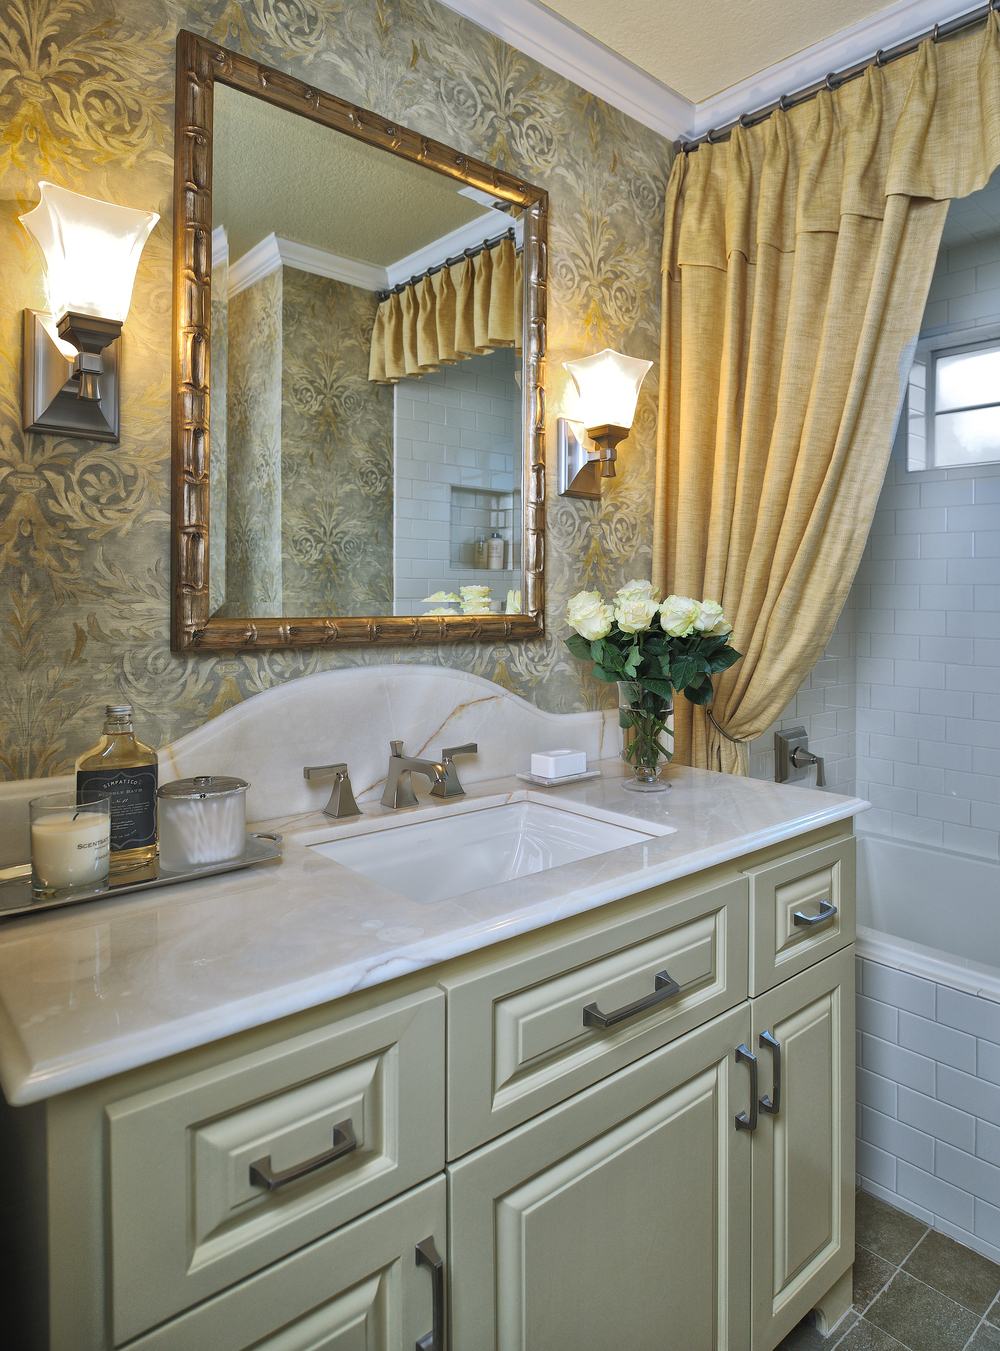 Top 10 bathroom design trends guaranteed to freshen up your home designed for Wallpaper trends for bathrooms